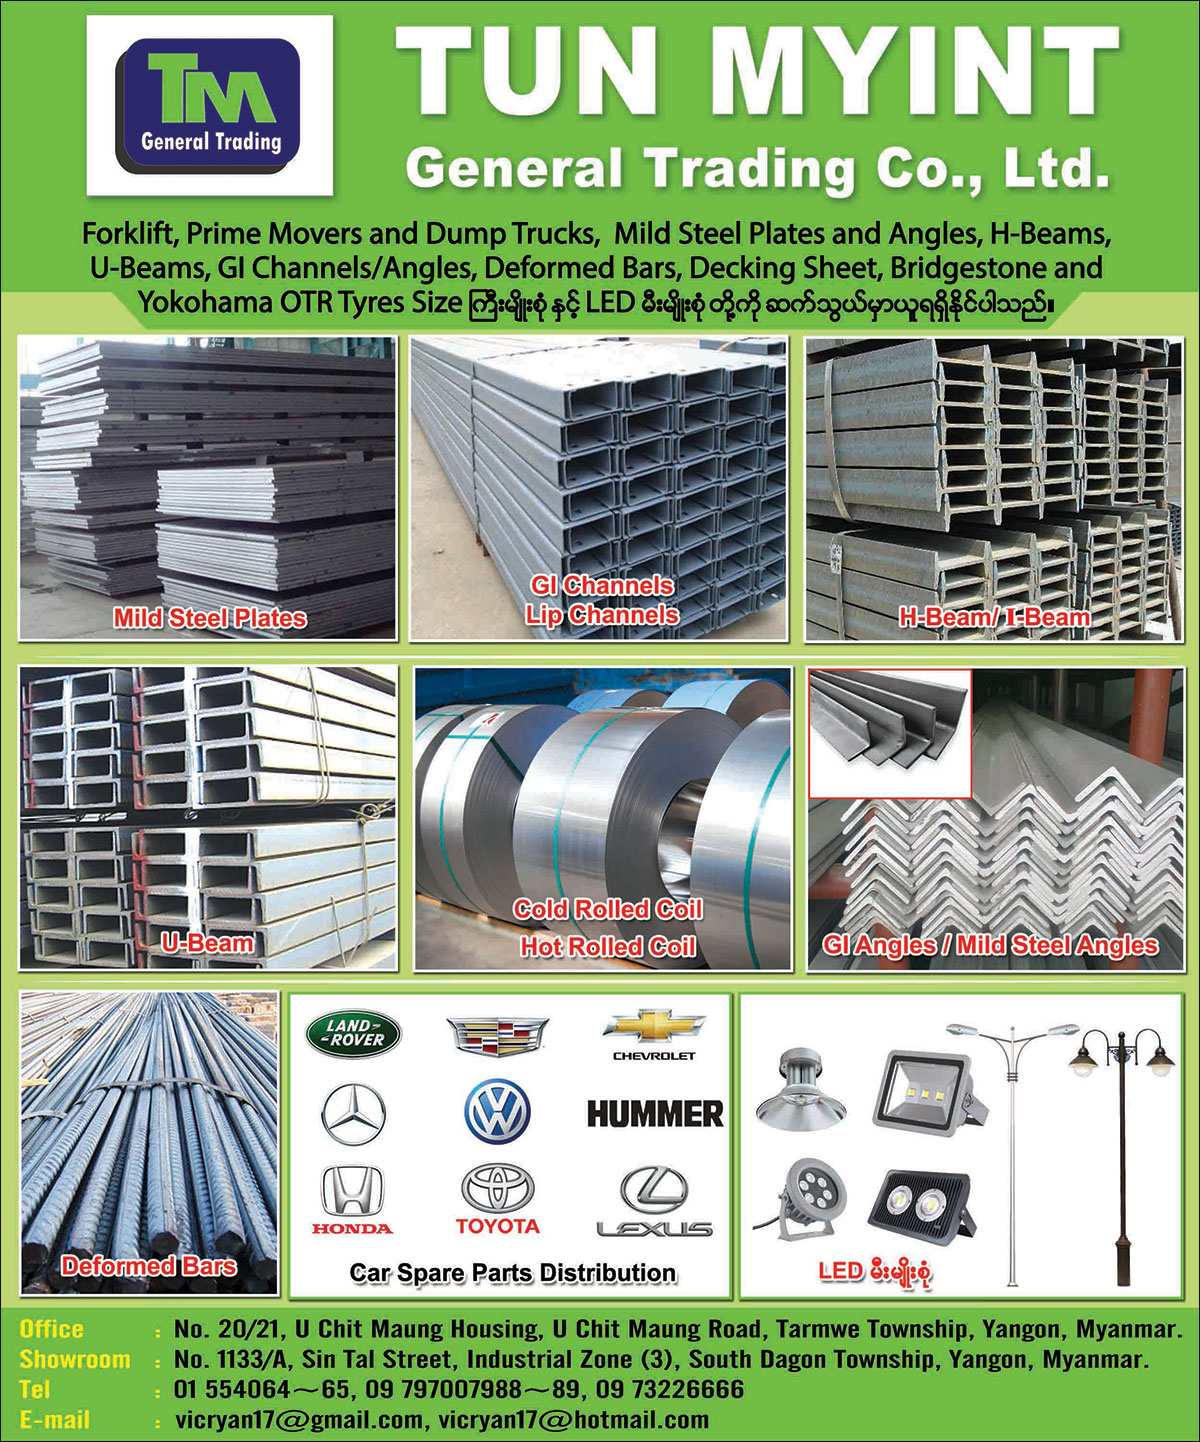 Tun Myint General Trading Co., Ltd.Hardware Merchants & Ironmongers